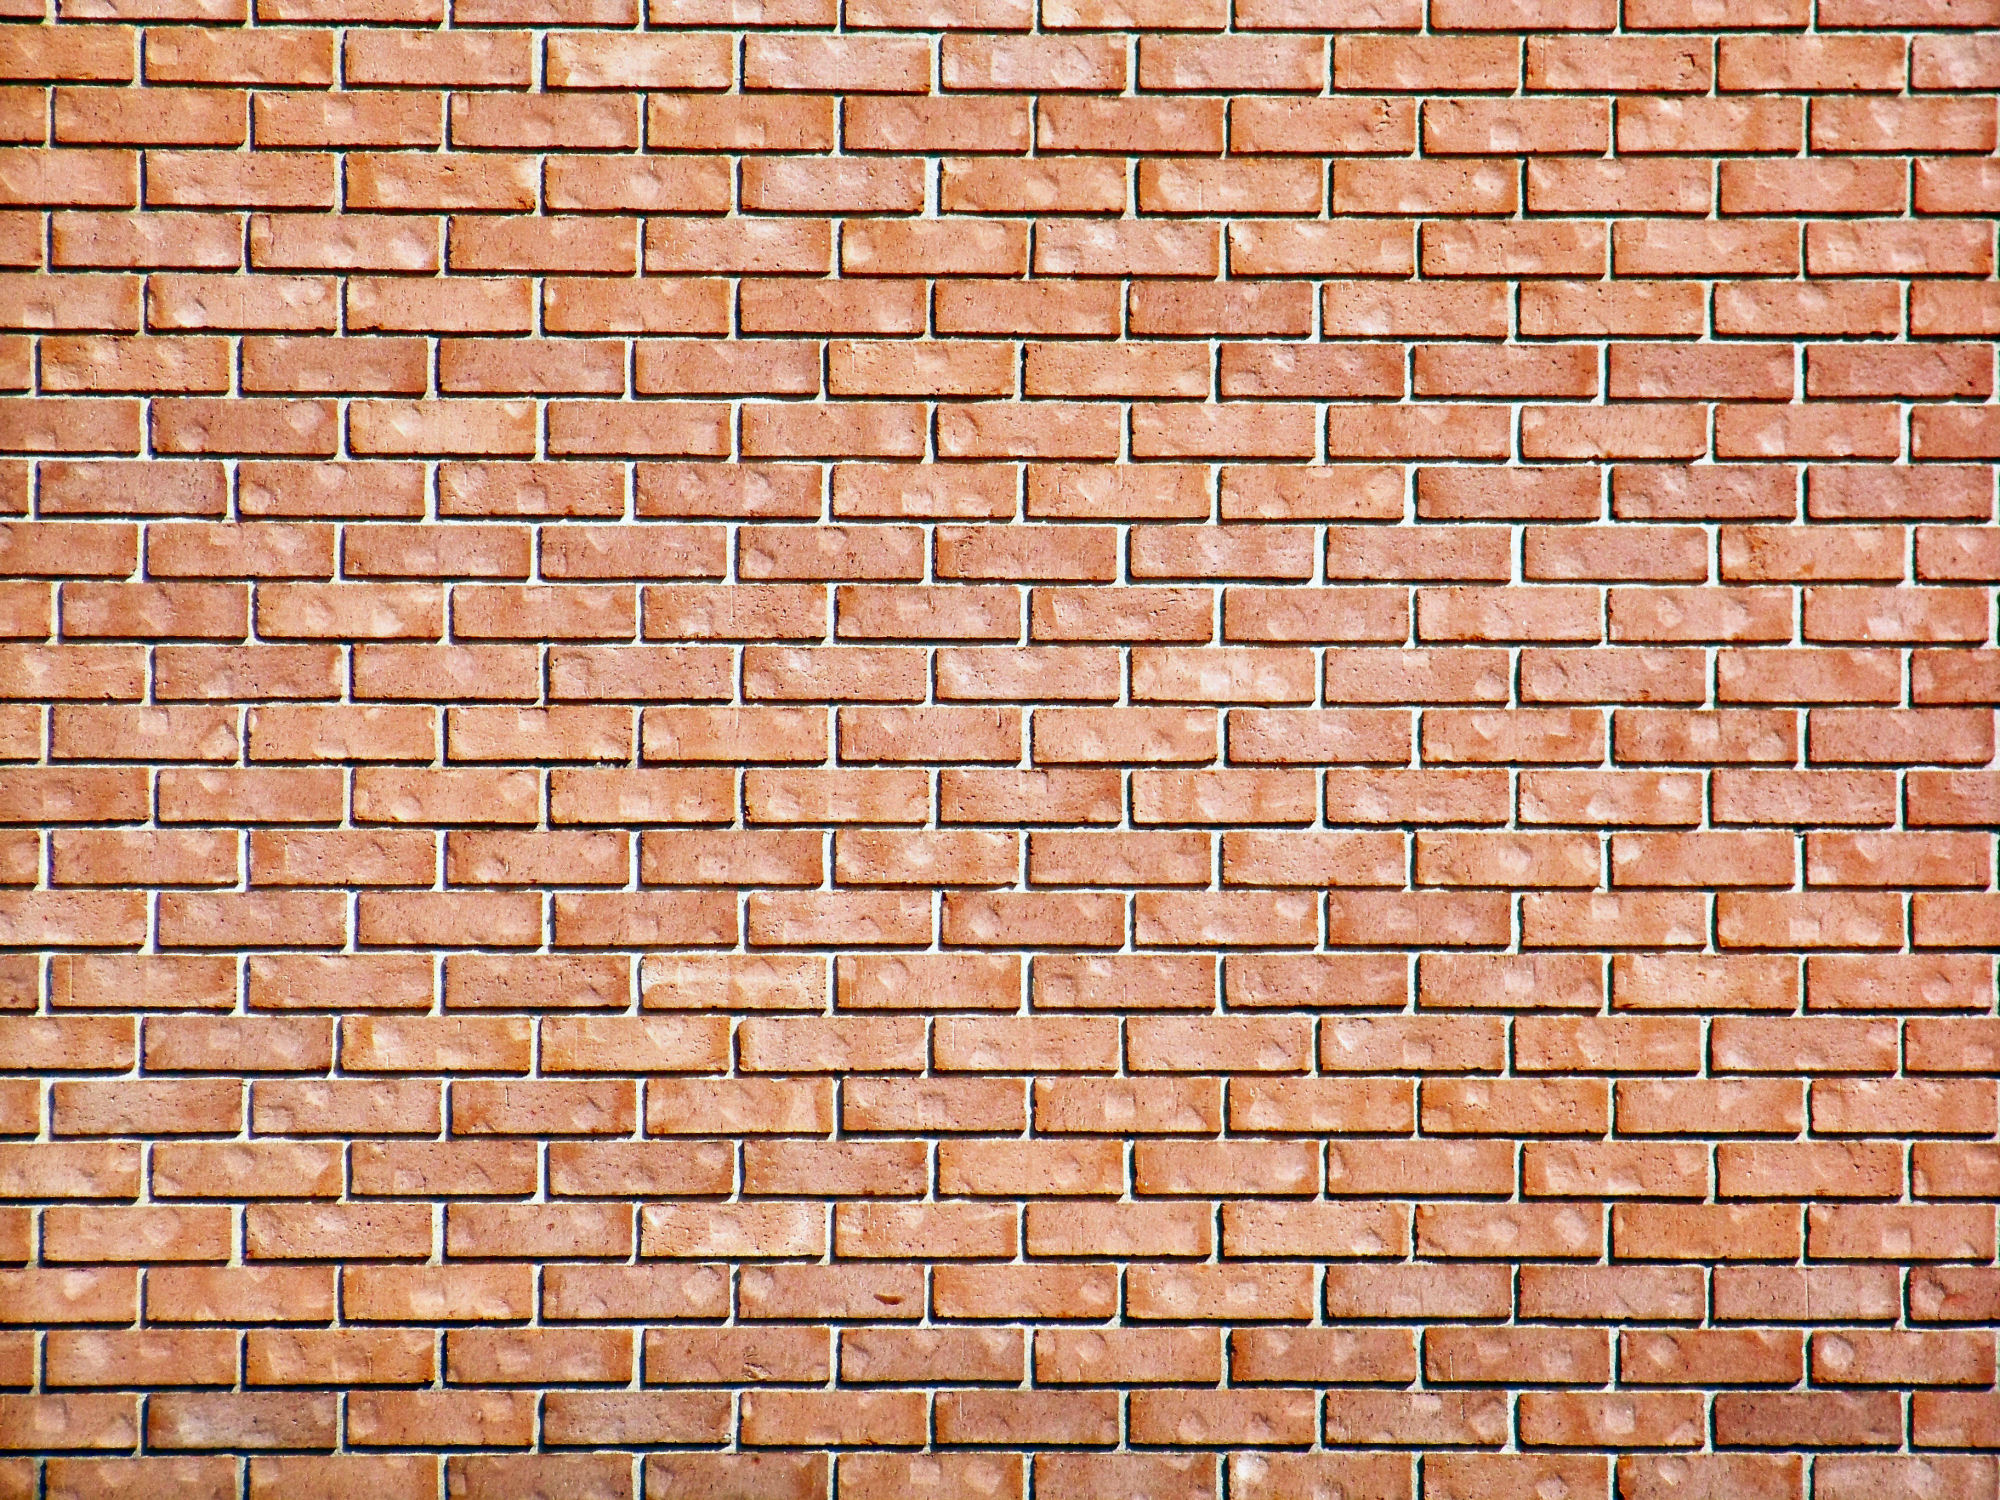 Brick clipart. Texture wall backgrounds psd